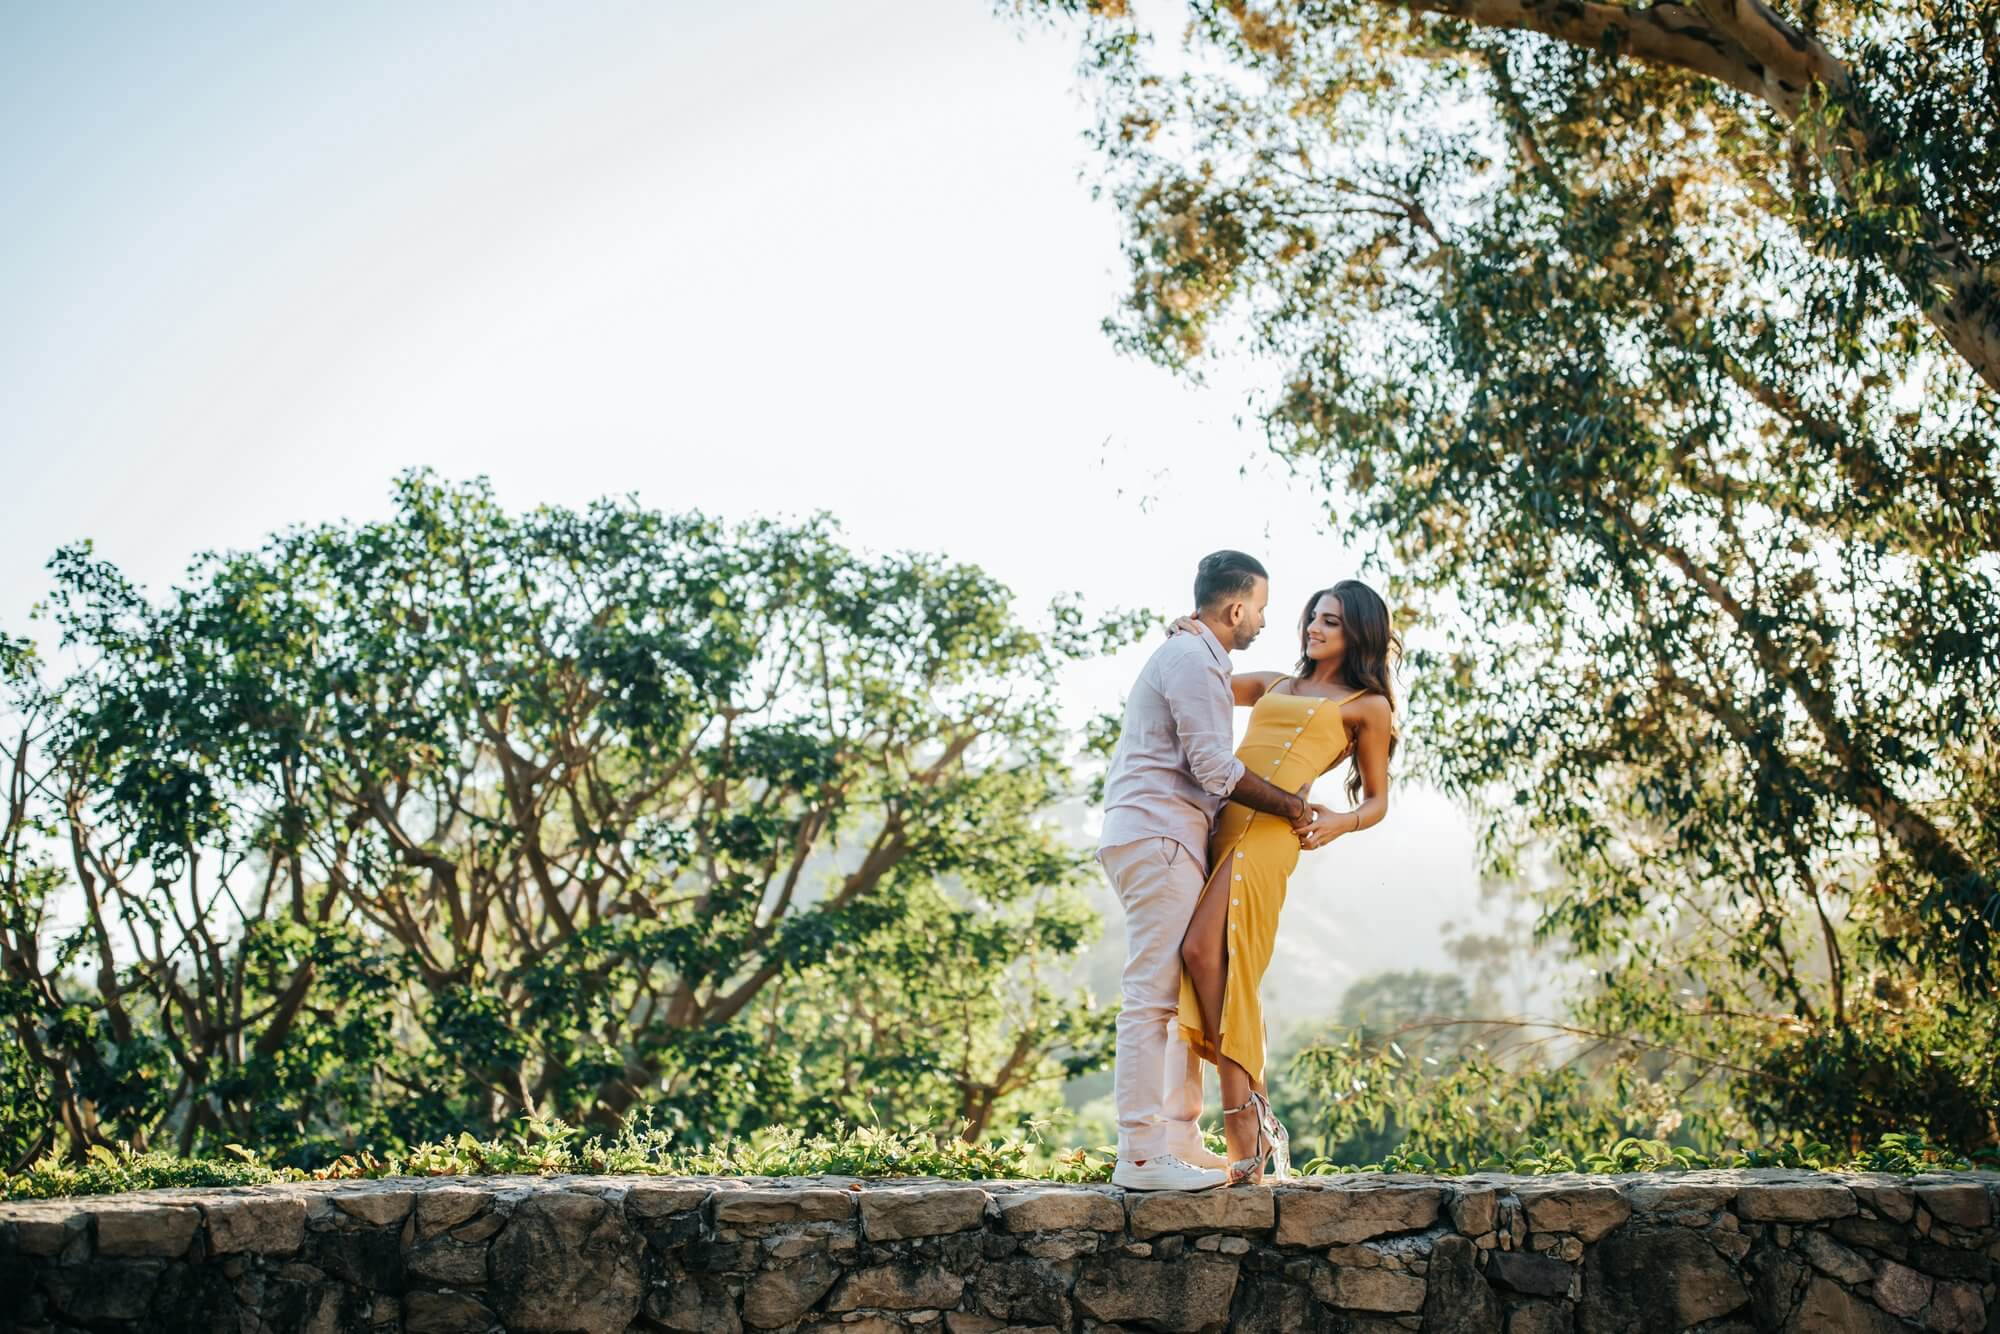 chateau_de_grace_Malibu_Engagement_California_Dmitry_Shumanev13